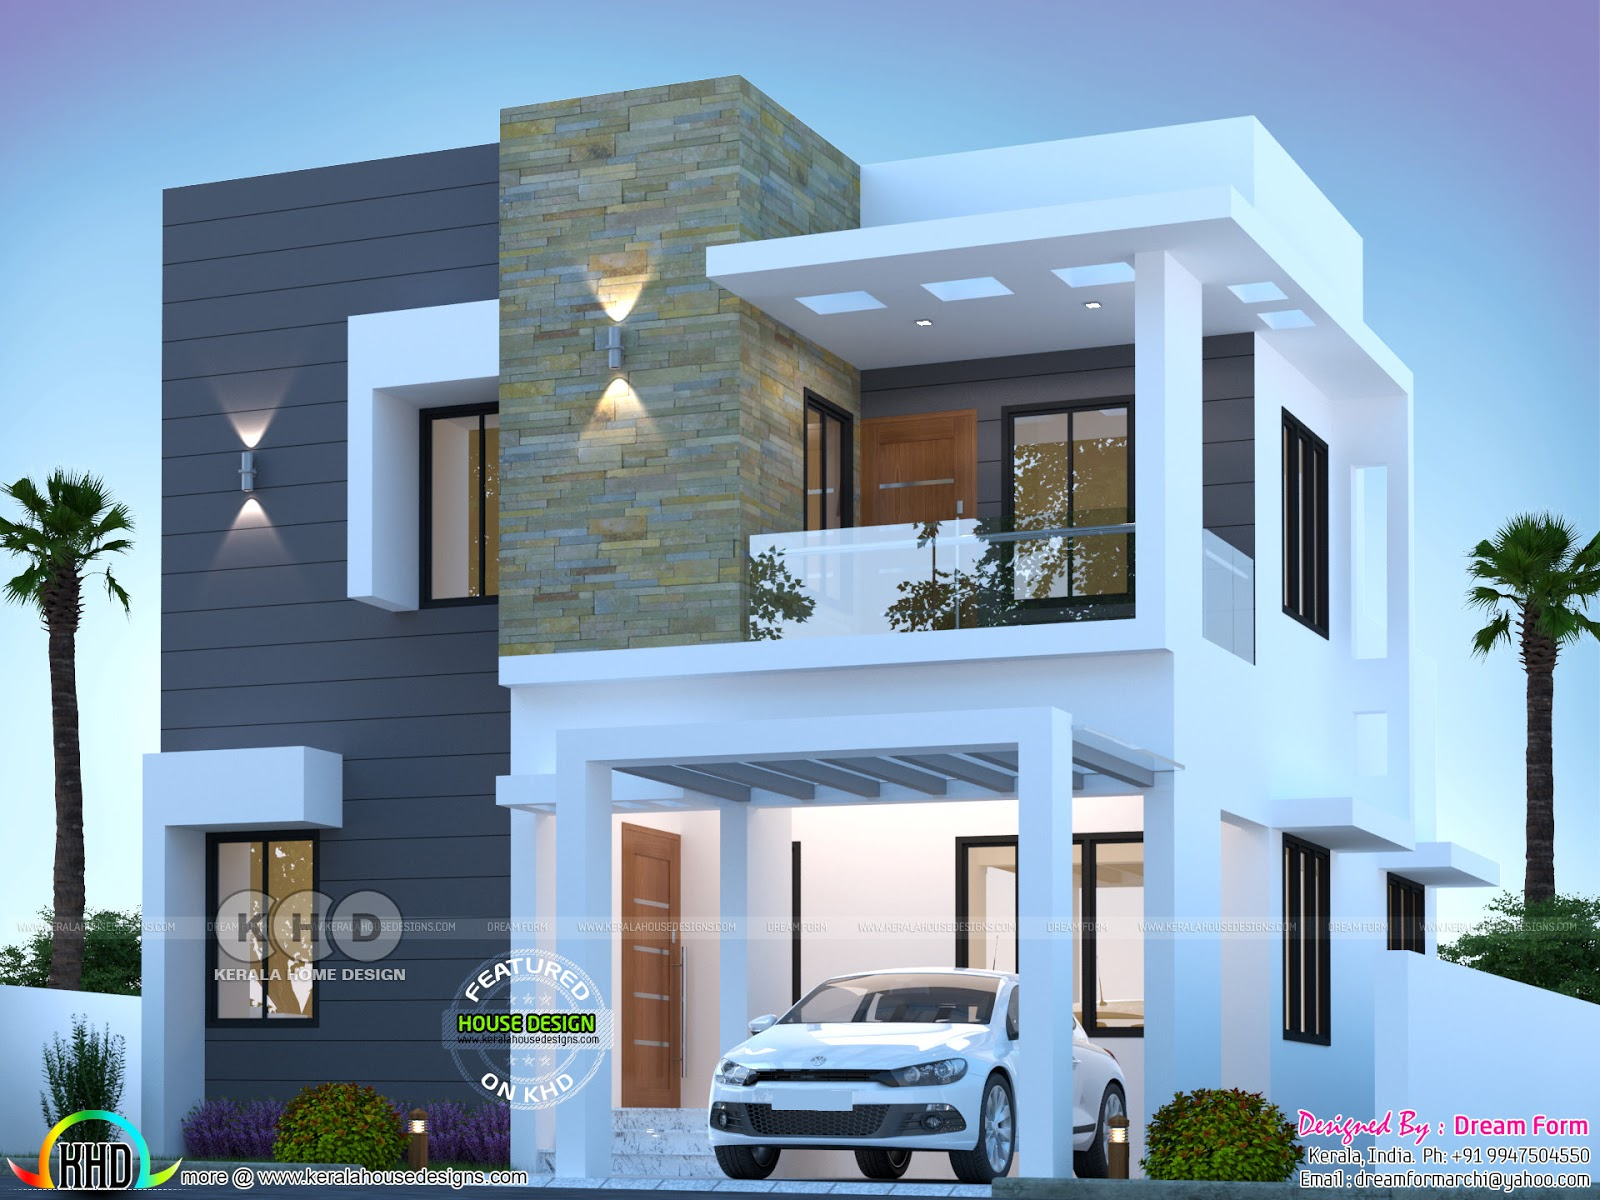 3 Bhk Cute Modern House 1550 Sq Ft Kerala Home Design And Floor Plans 8000 Houses